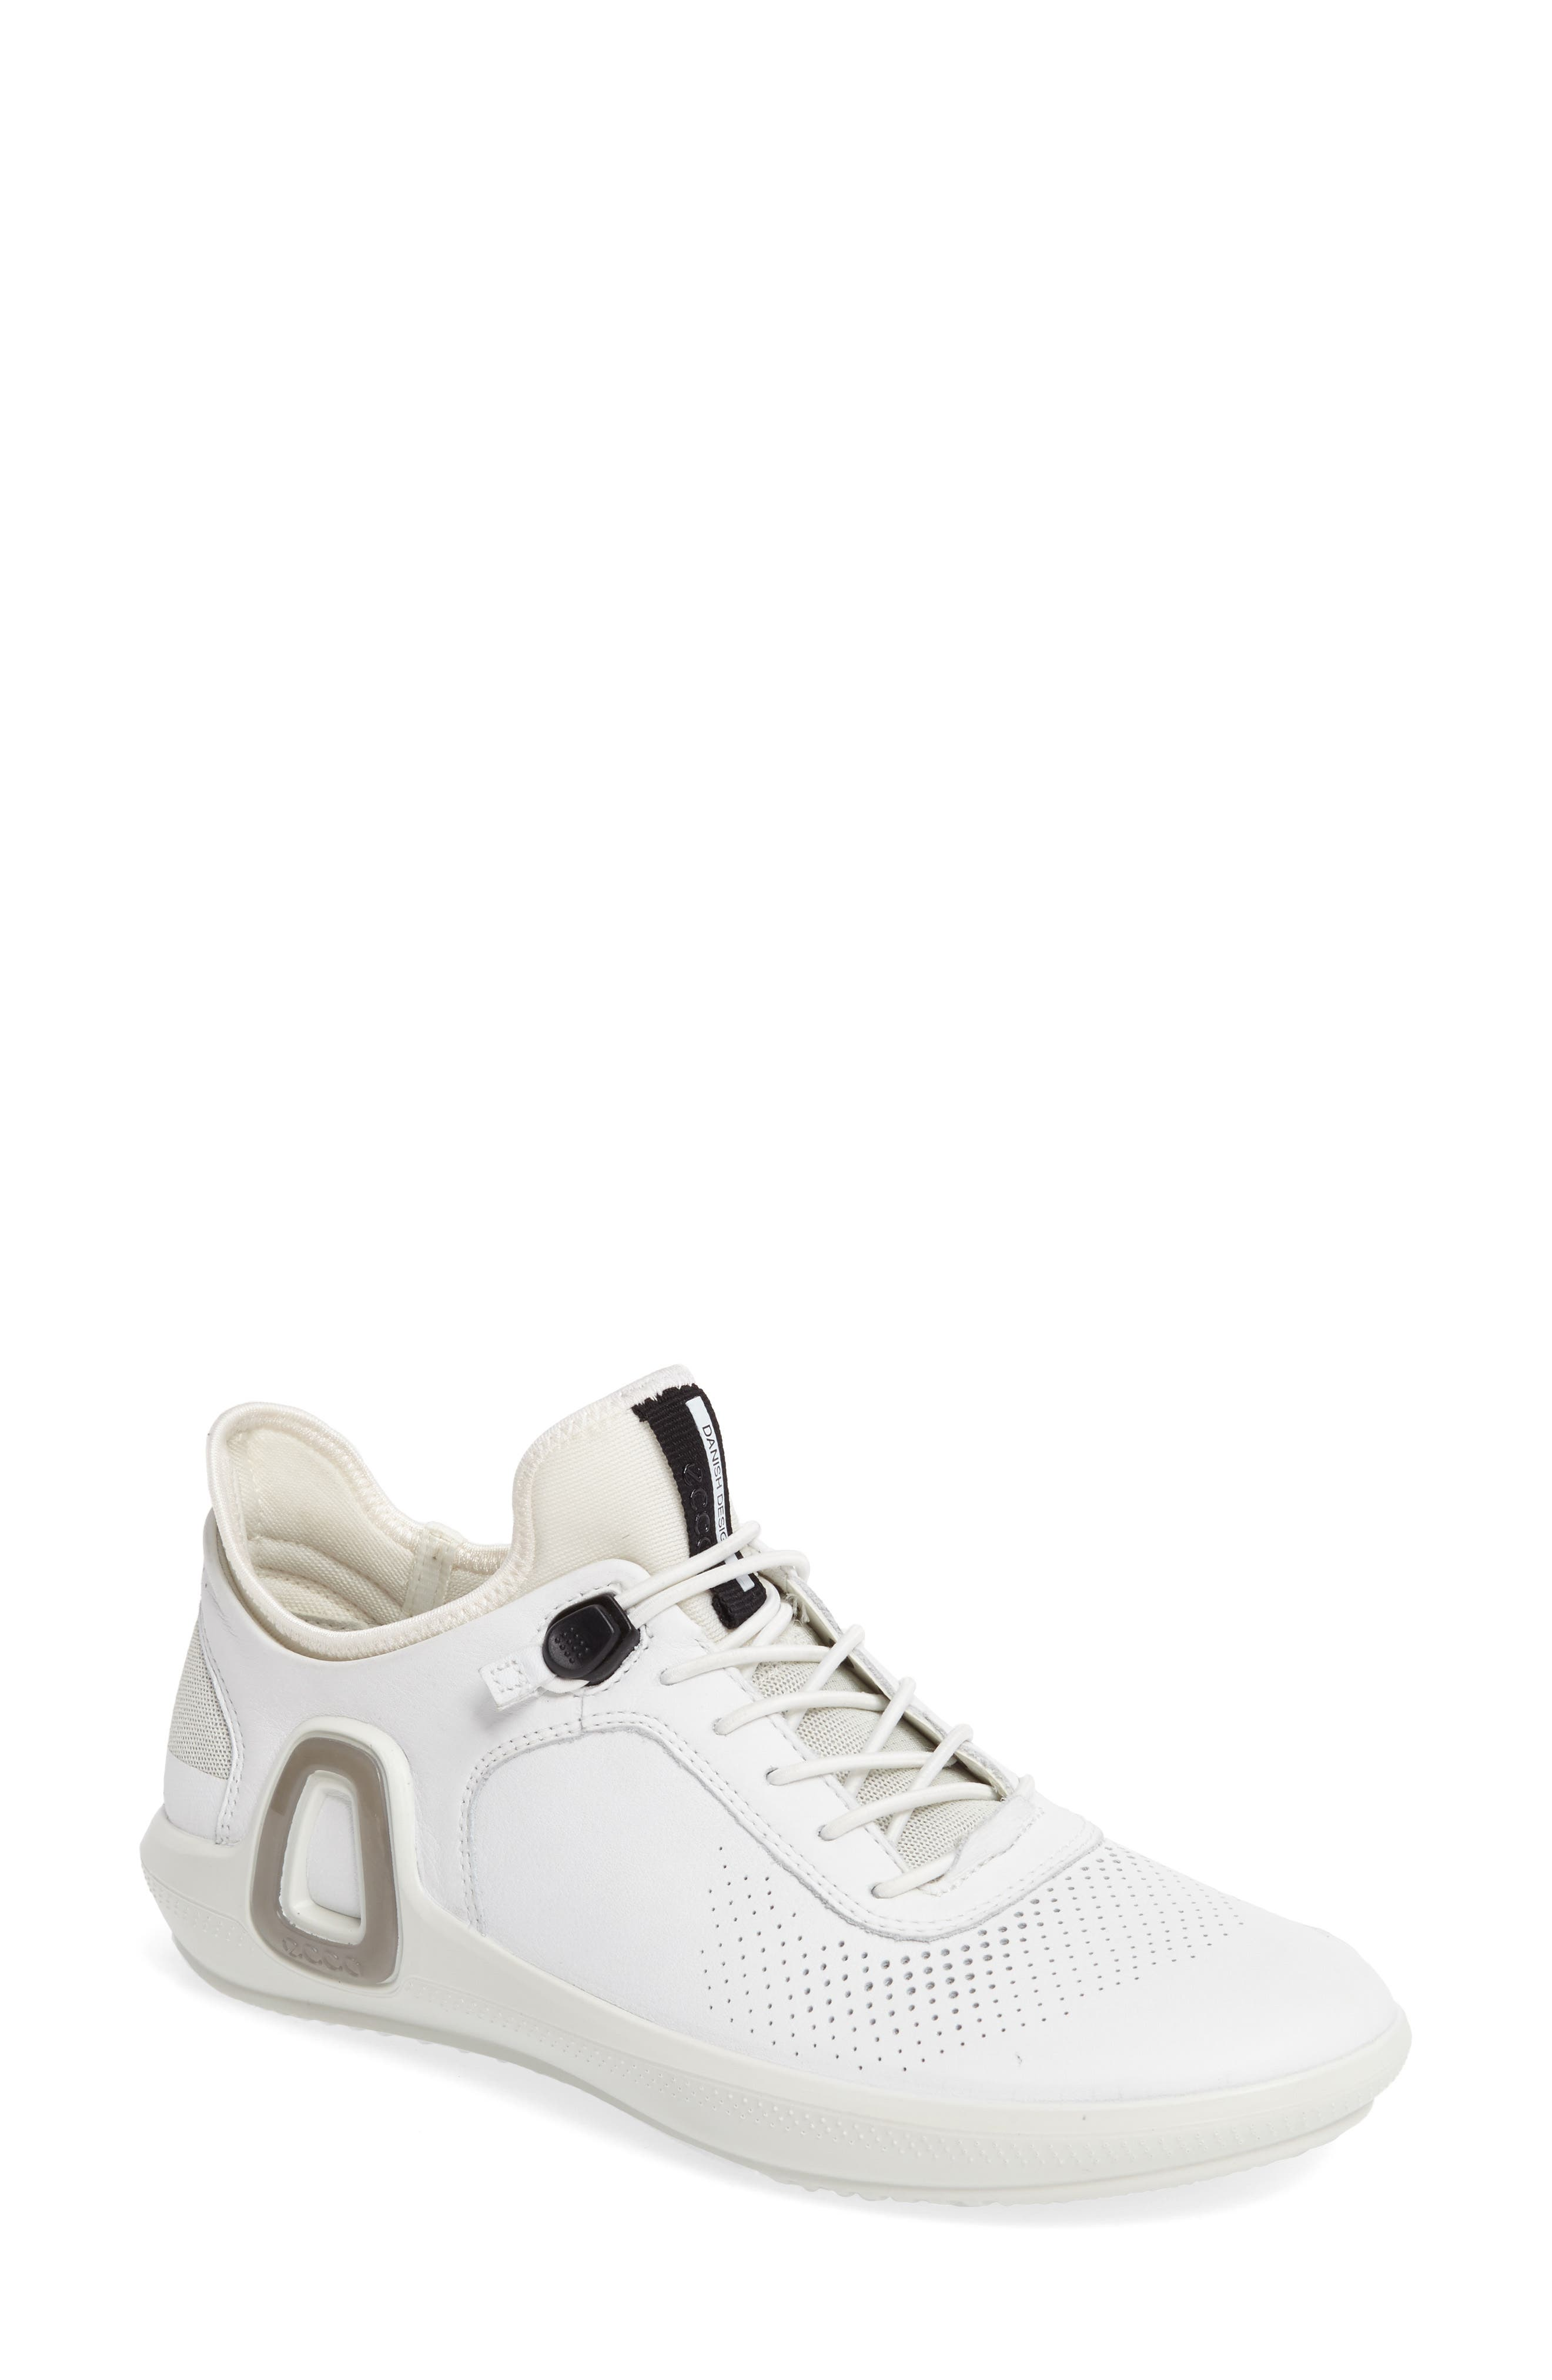 Intrinsic 3 Sneaker,                         Main,                         color, White Leather